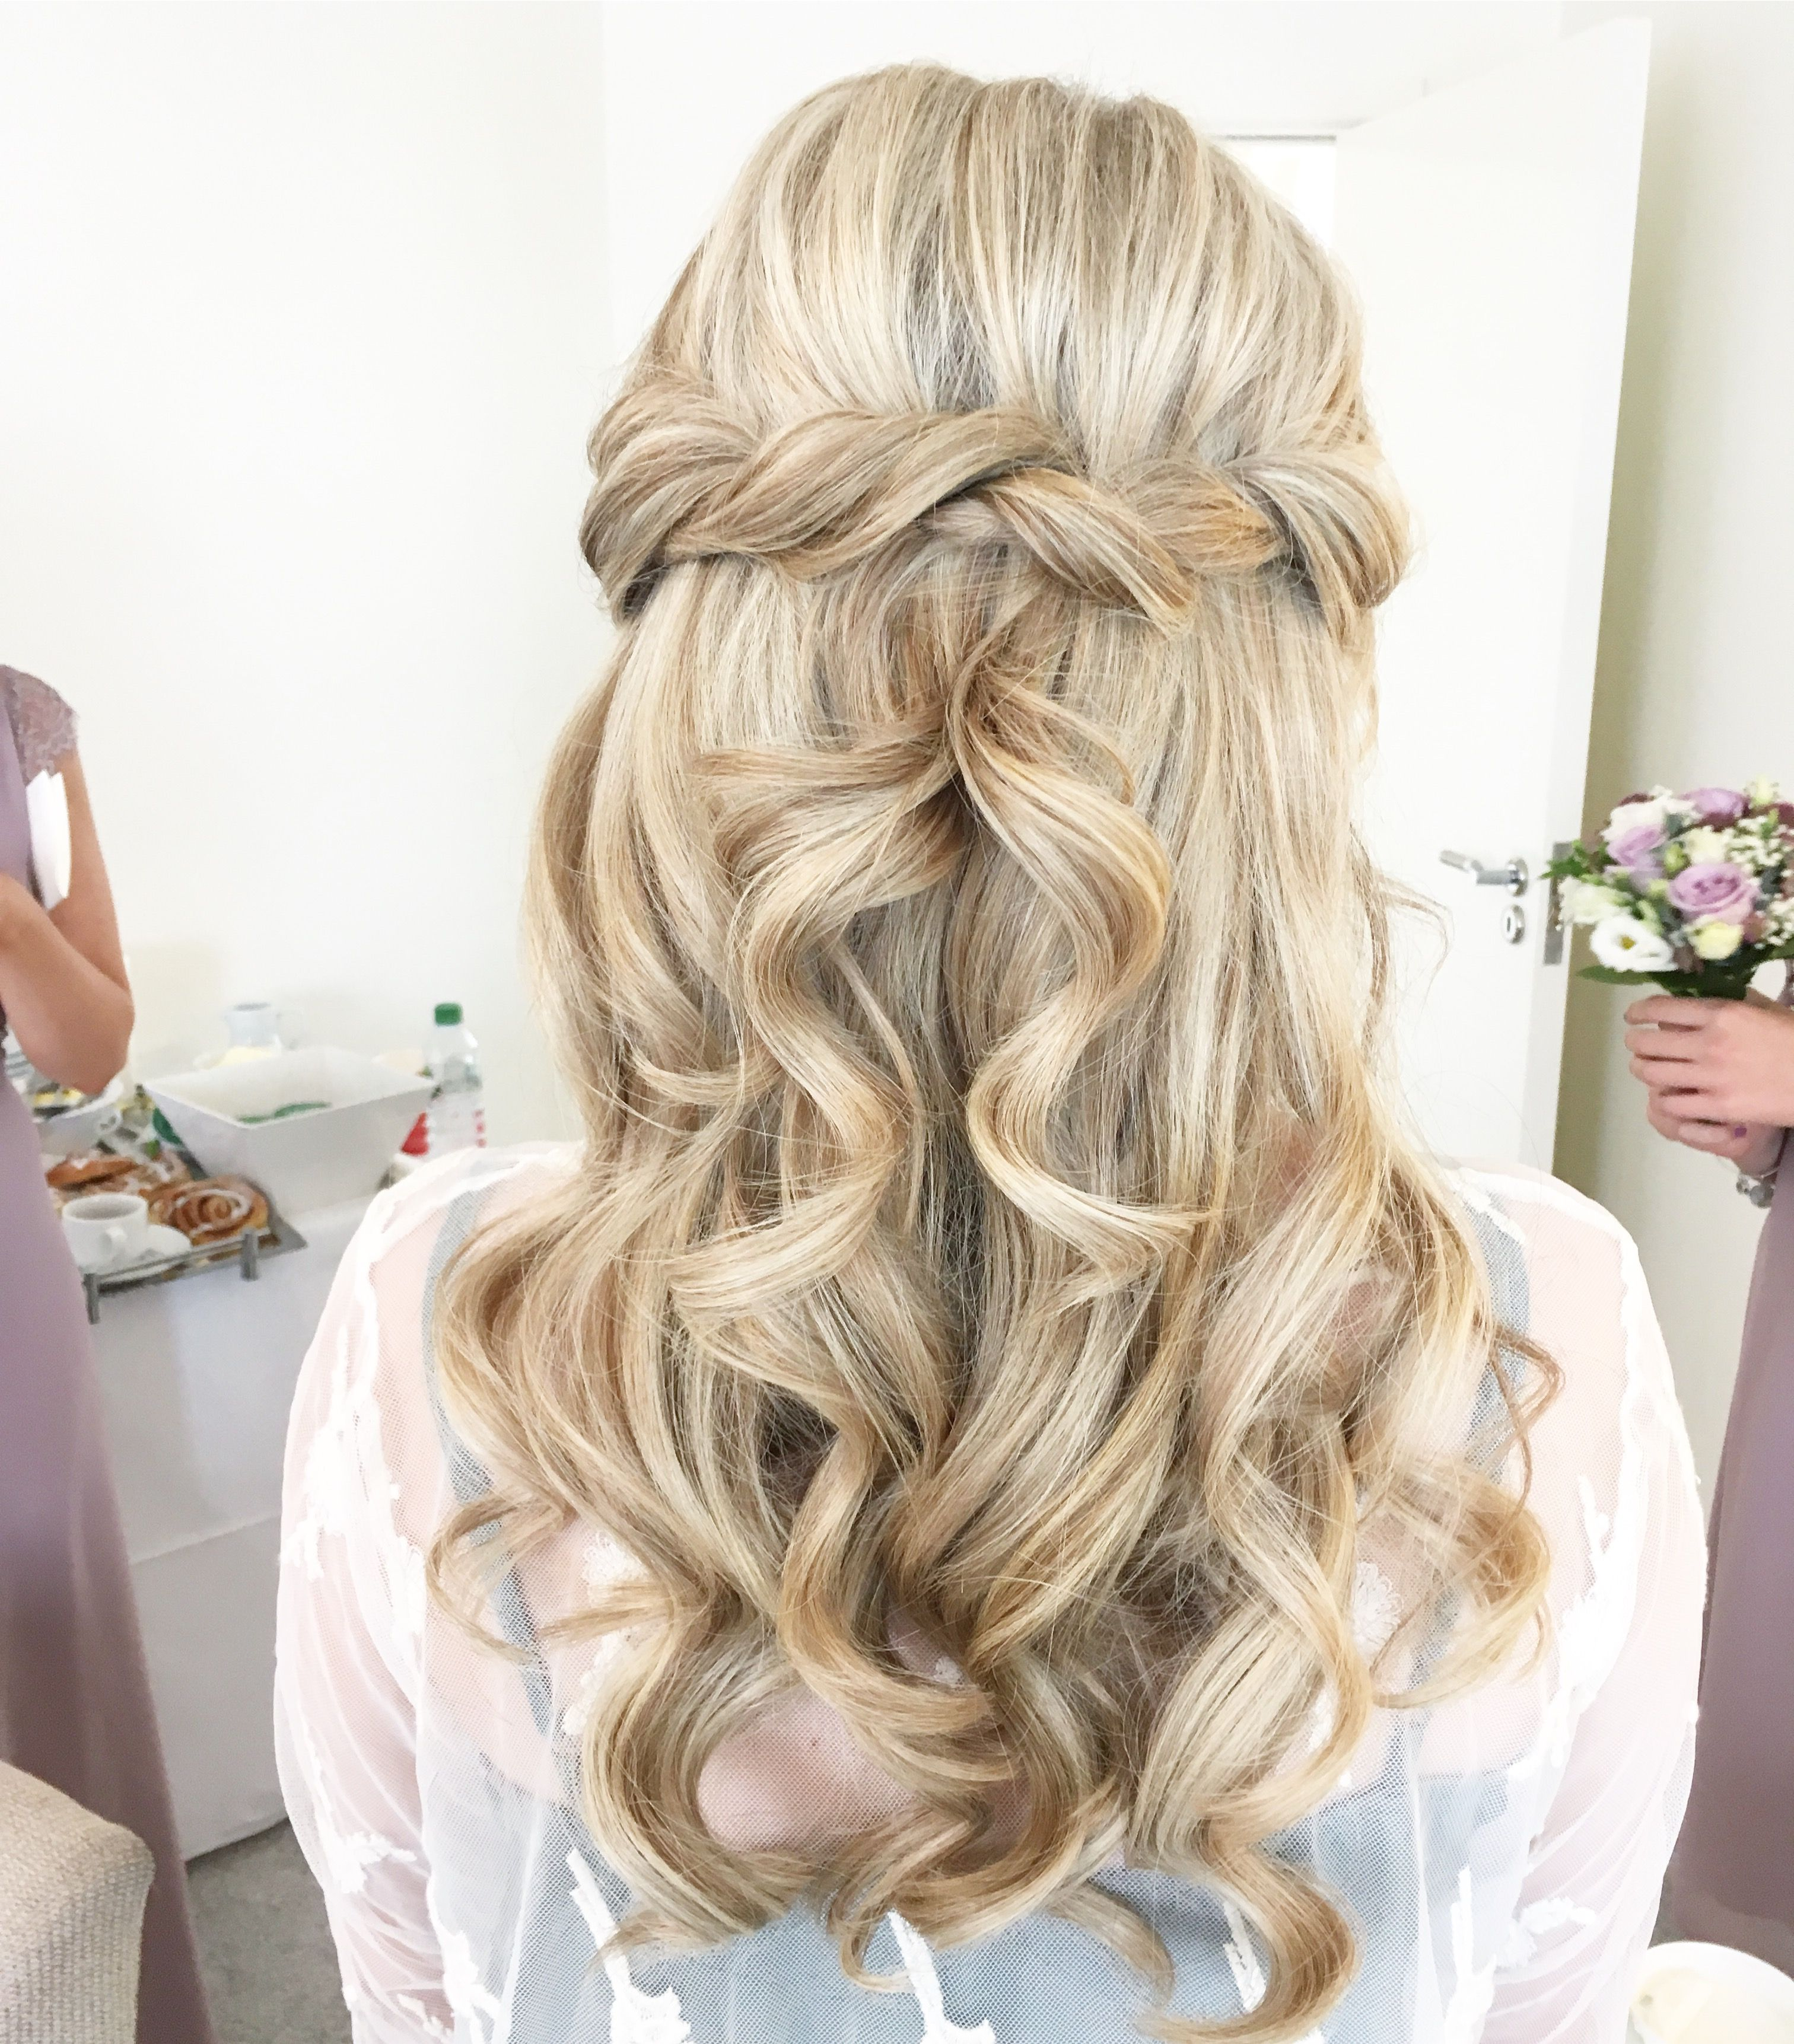 Wedding Hairstyle Knot Me Pretty: Half Up Pretty Bridal Hairstyle